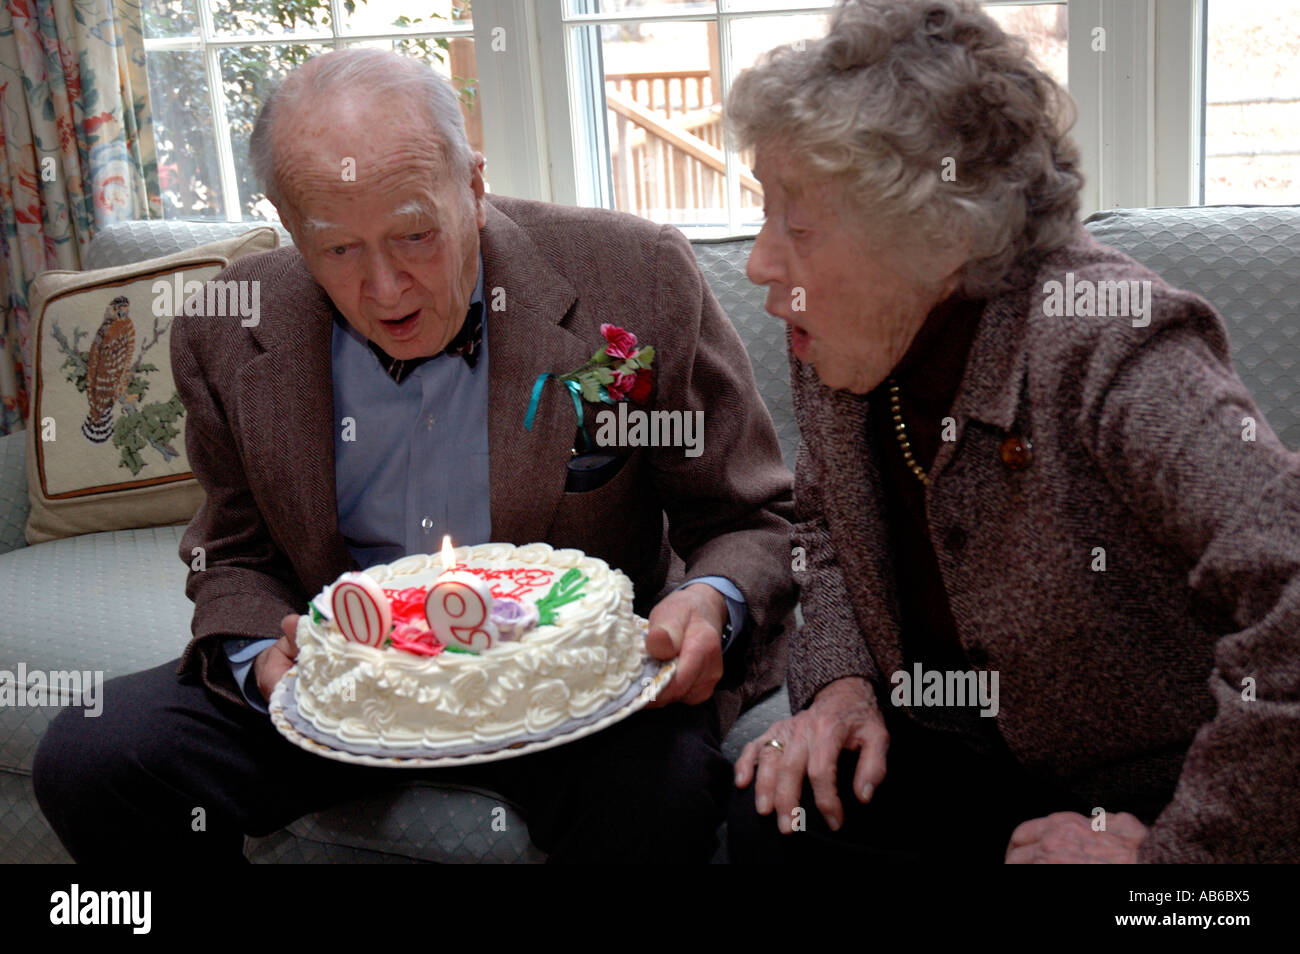 Wife Helping Ninety Year Old Man Blow Out Candles On Cake At His 90th Birthday Party